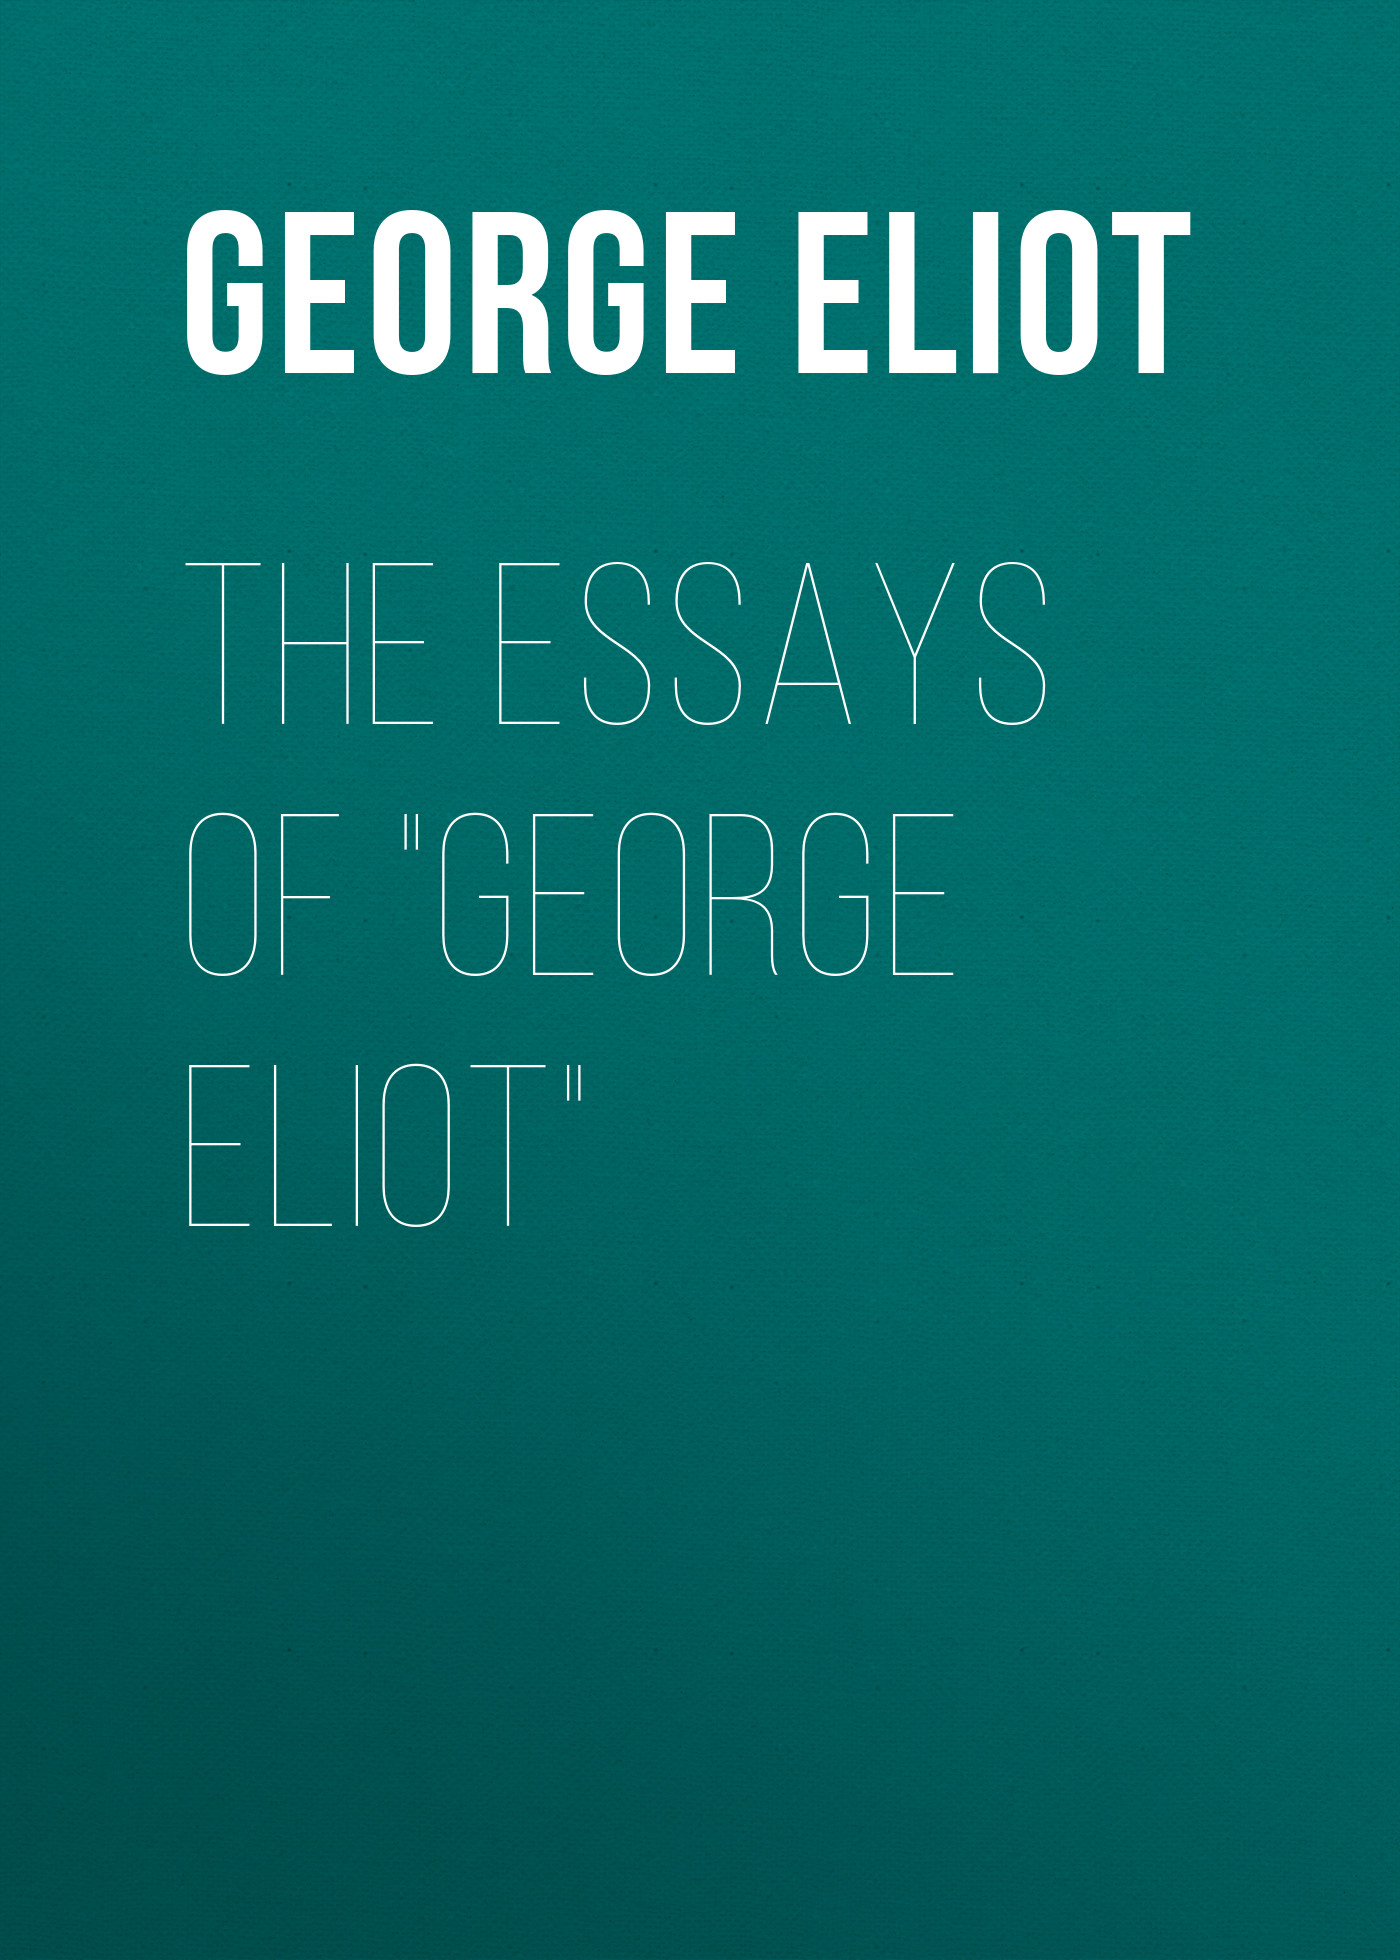 Джордж Элиот The Essays of George Eliot джордж элиот daniel deronda